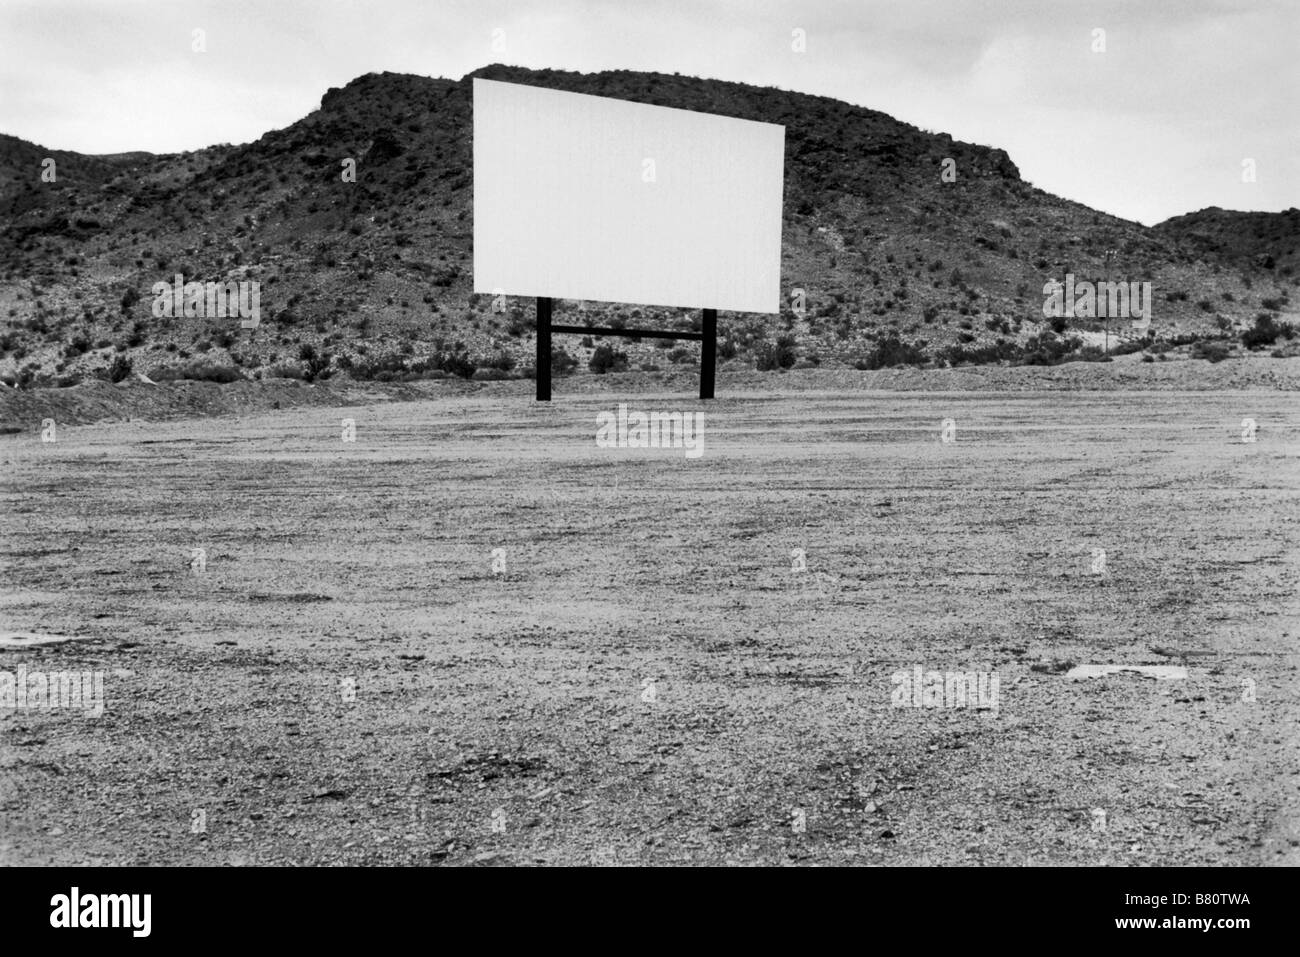 Empty Movie Theatre High Resolution Stock Photography And Images Alamy